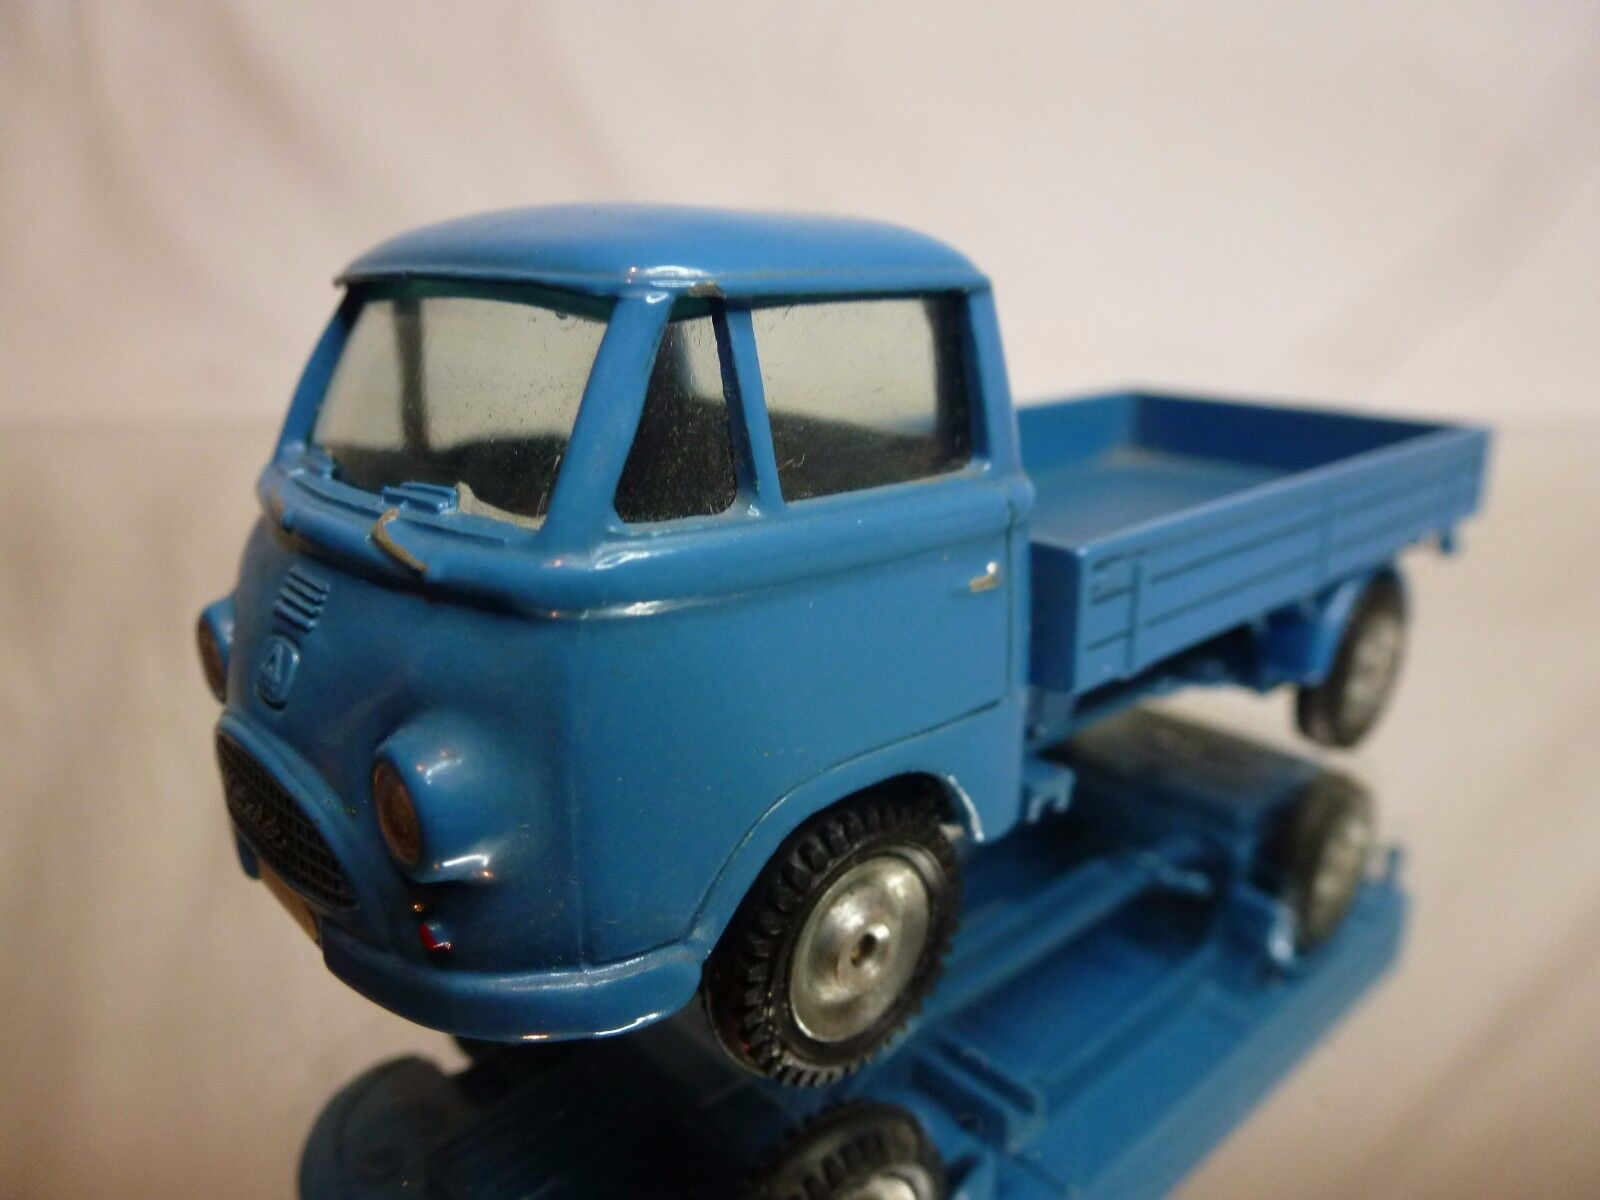 HANOMAG MATADOR TRUCK - Azul 1:50 RARE - GOOD CONDITION